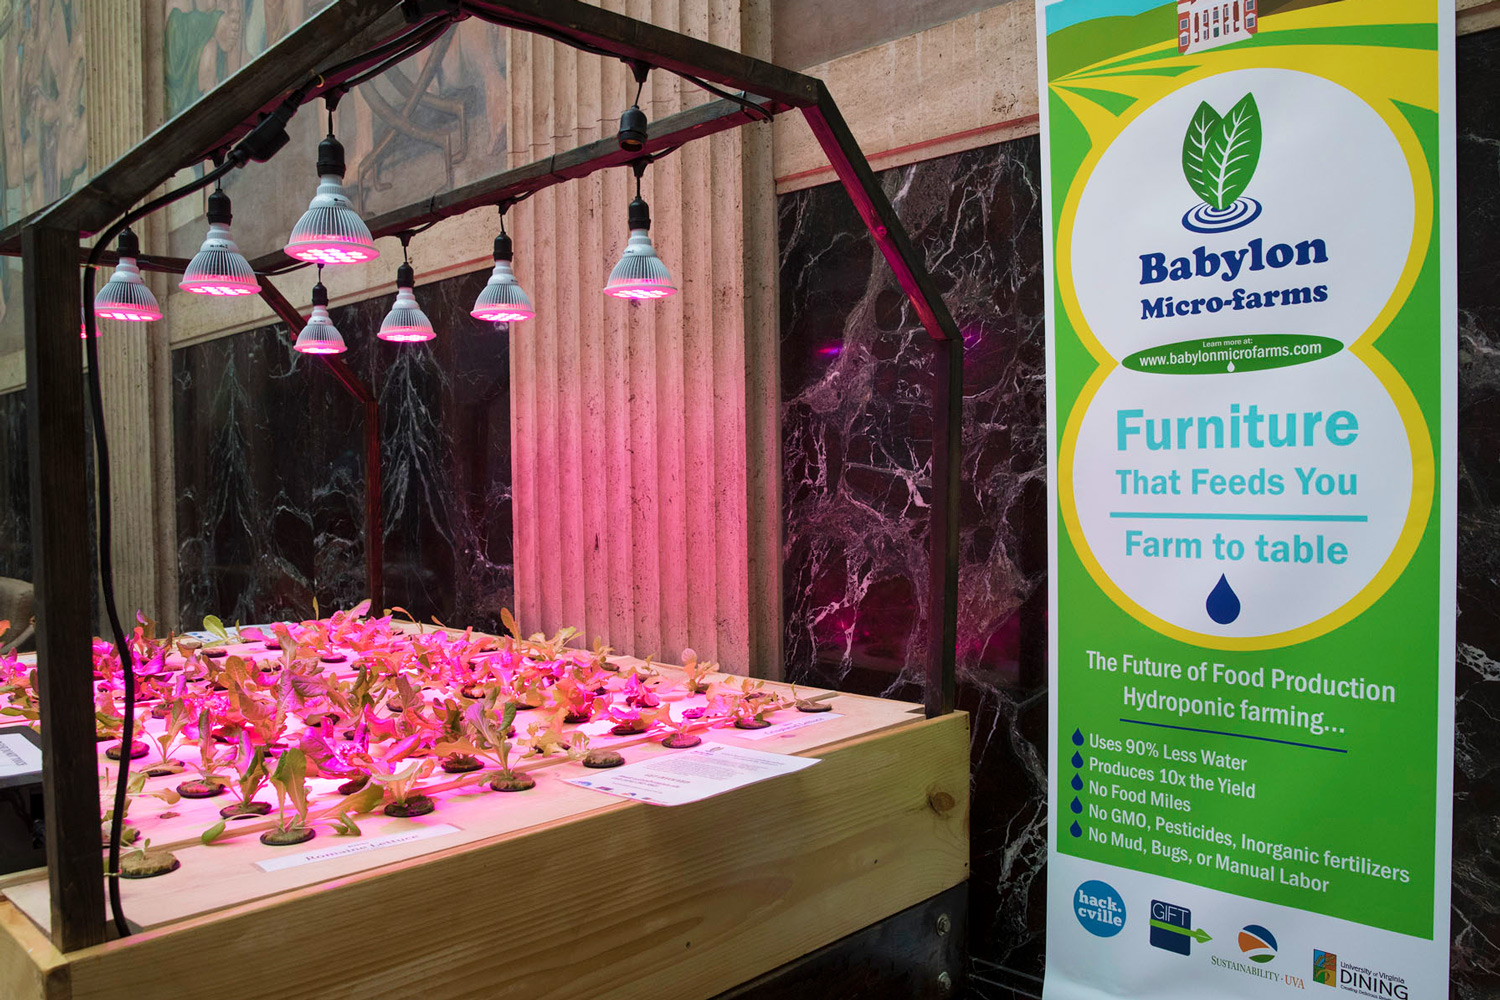 Plants grown in hydroponics systems, such as those used by Babylon Micro-Farms, are free of GMOs and pesticides. (Photo by Dan Addison, University Communications)